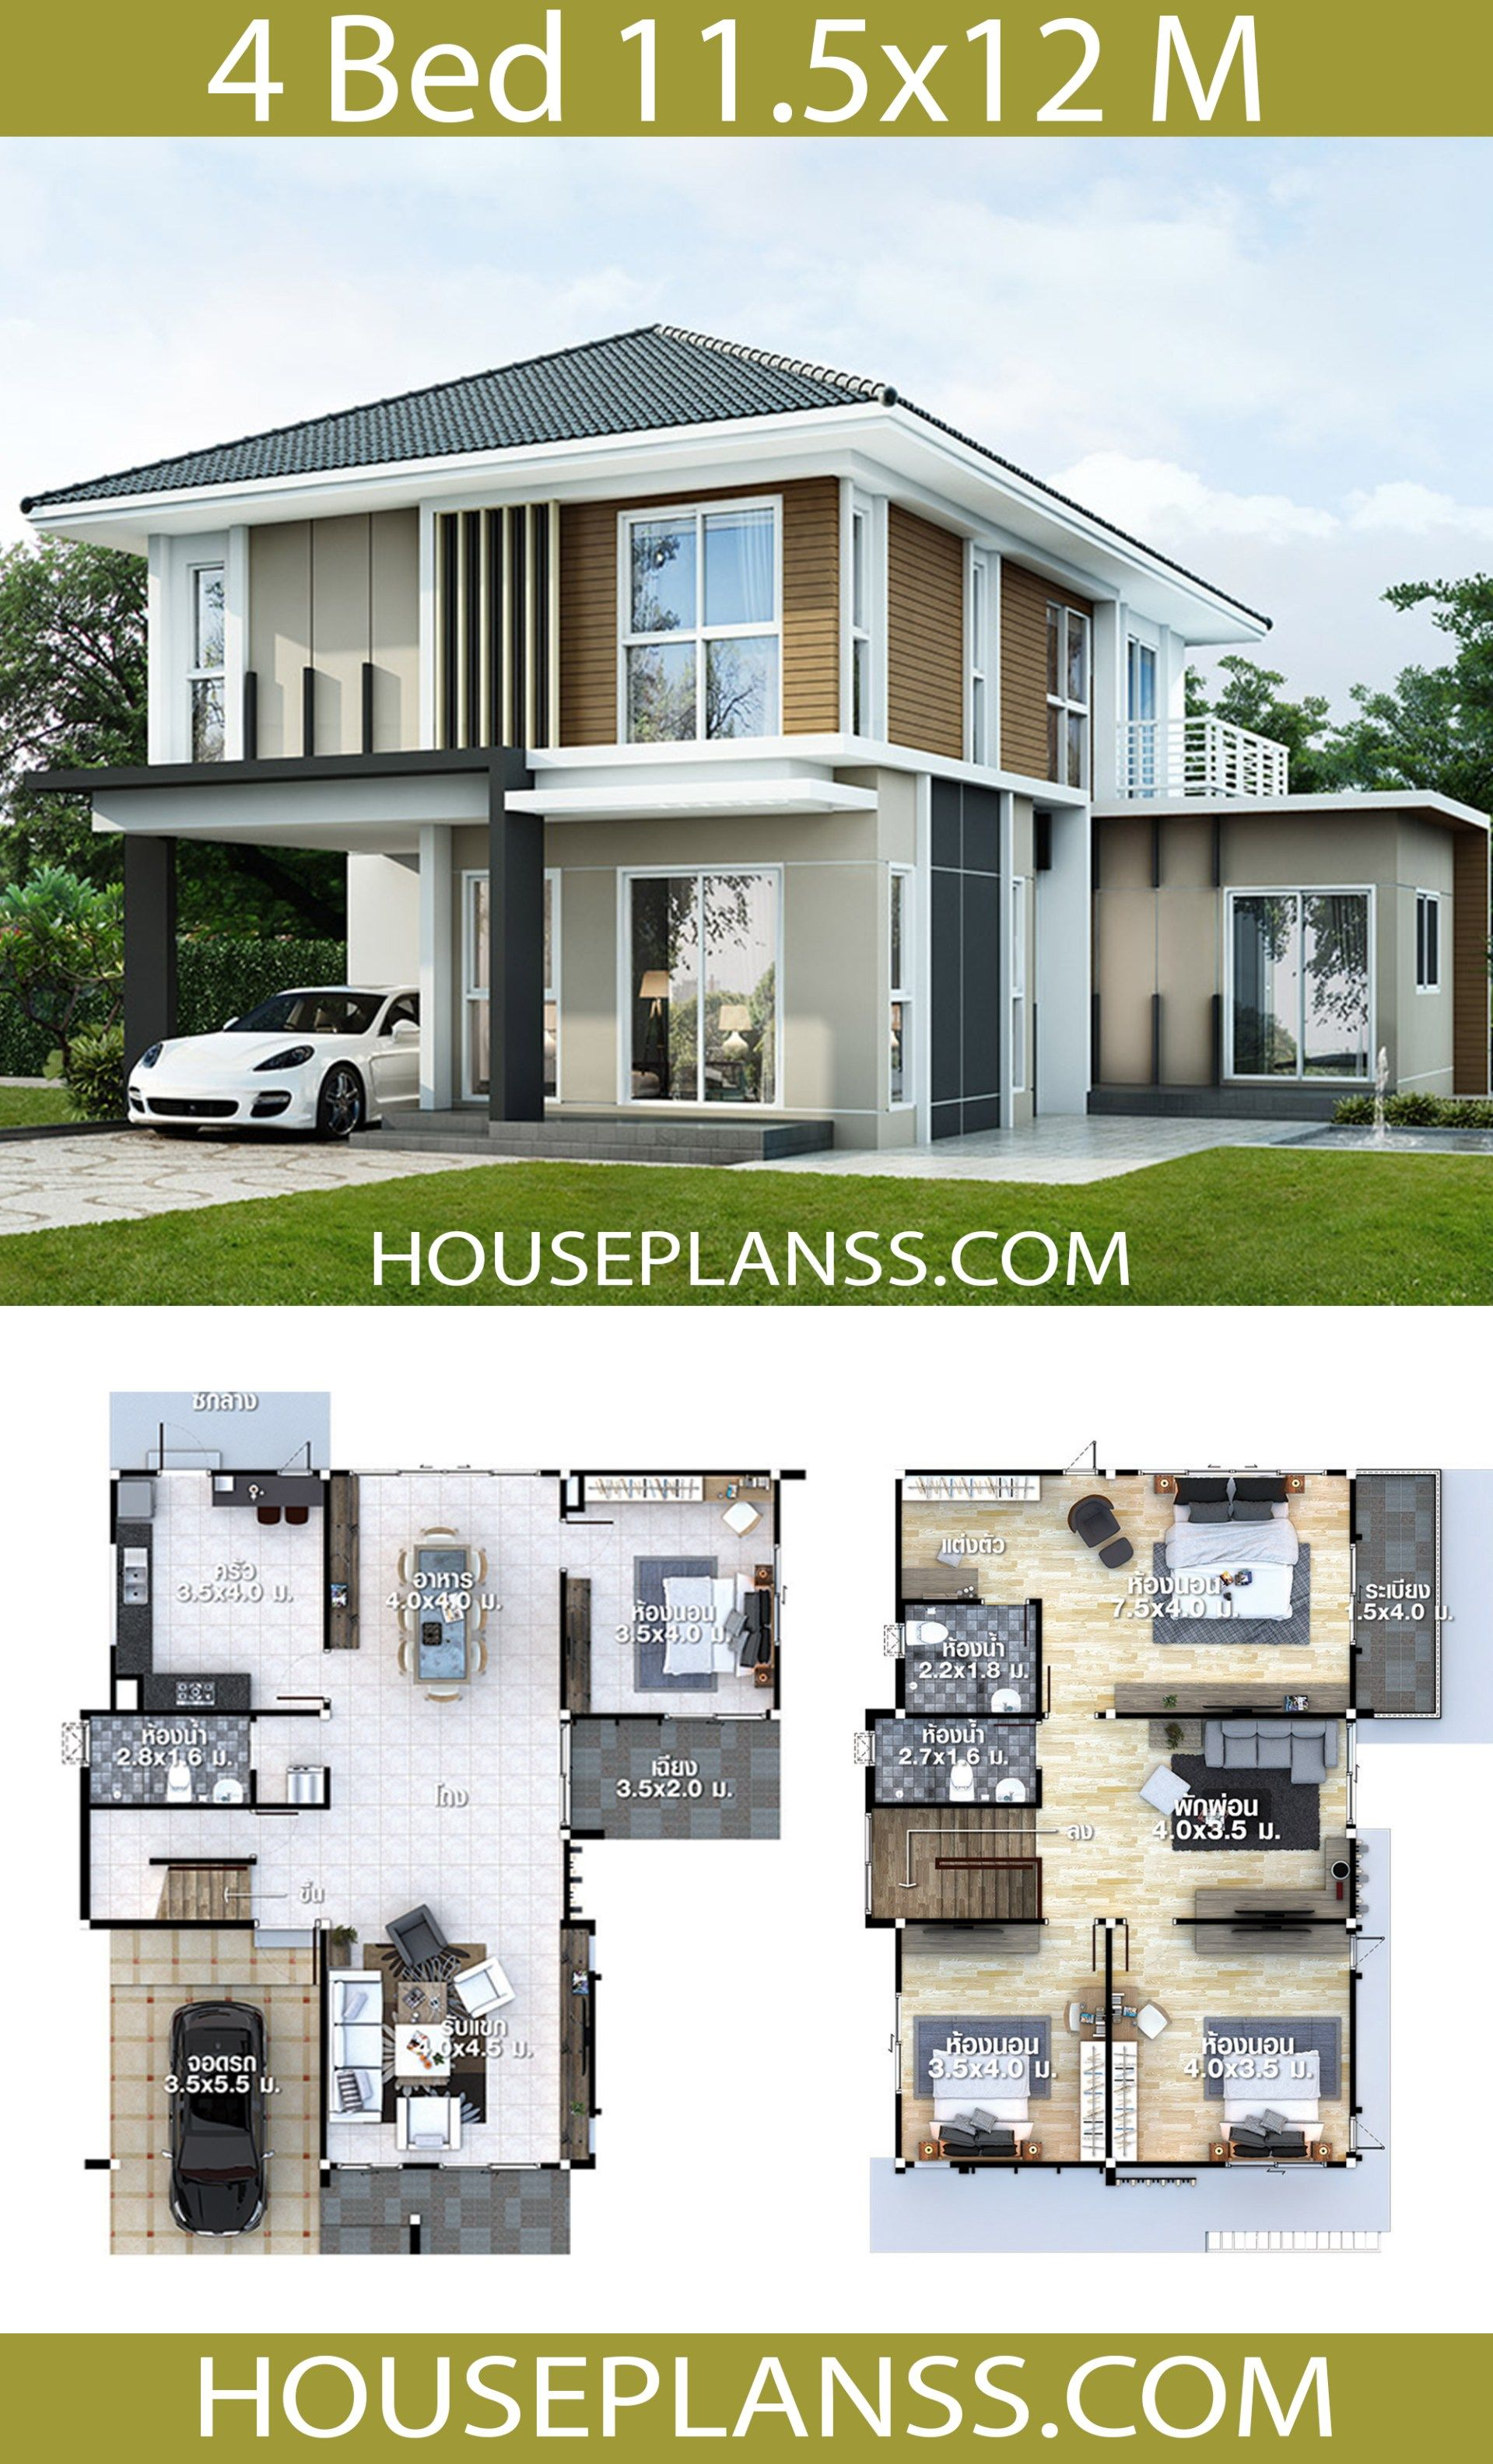 House Plans Idea 11 5x12 With 4 Bedrooms House Plans S Architect Design House House Roof Design House Construction Plan